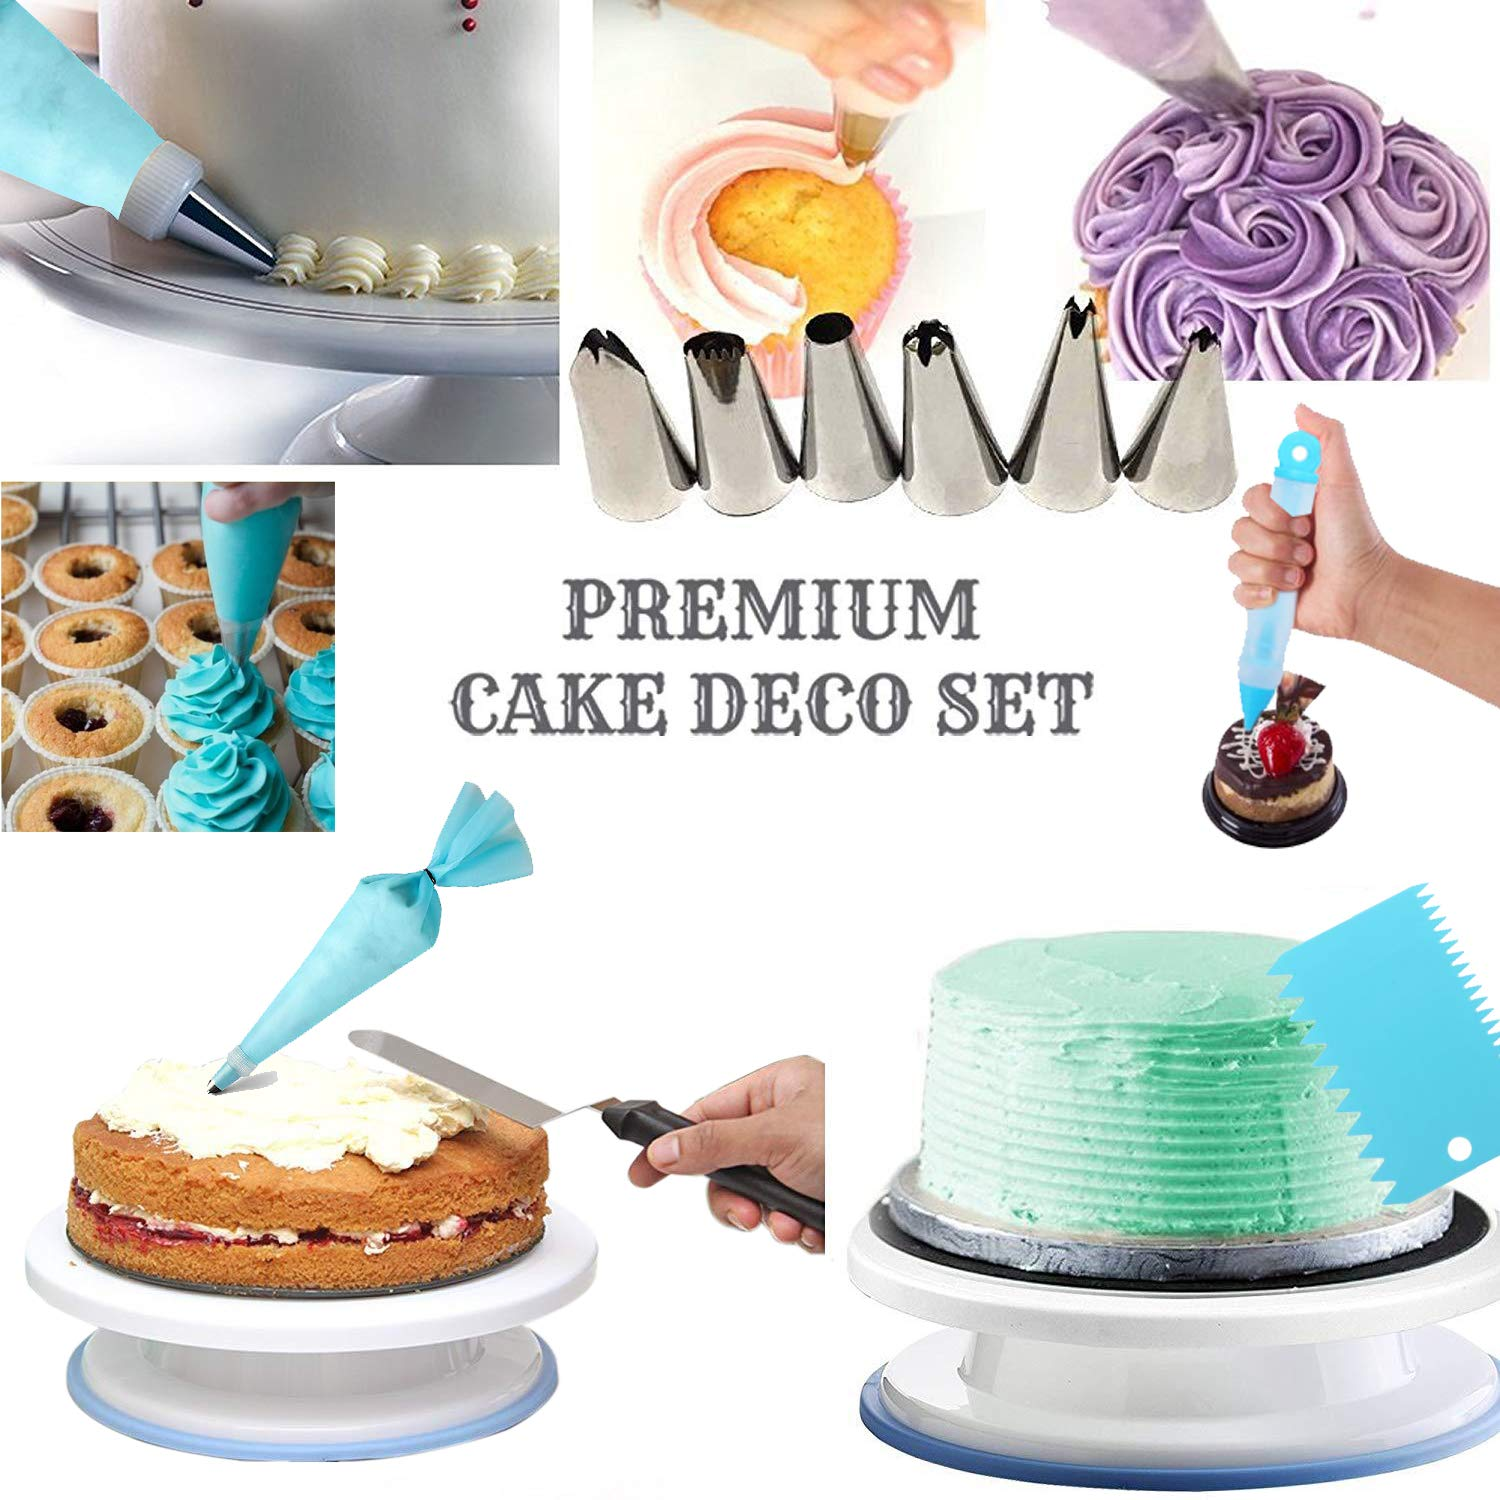 Cake Decorating Supplies Kit- 65 pcs Decorating Set With stands, piping tips, Pastry Bags,All-In-One Cake Decorating Set For Beginners & Professional by Nisam (Image #4)